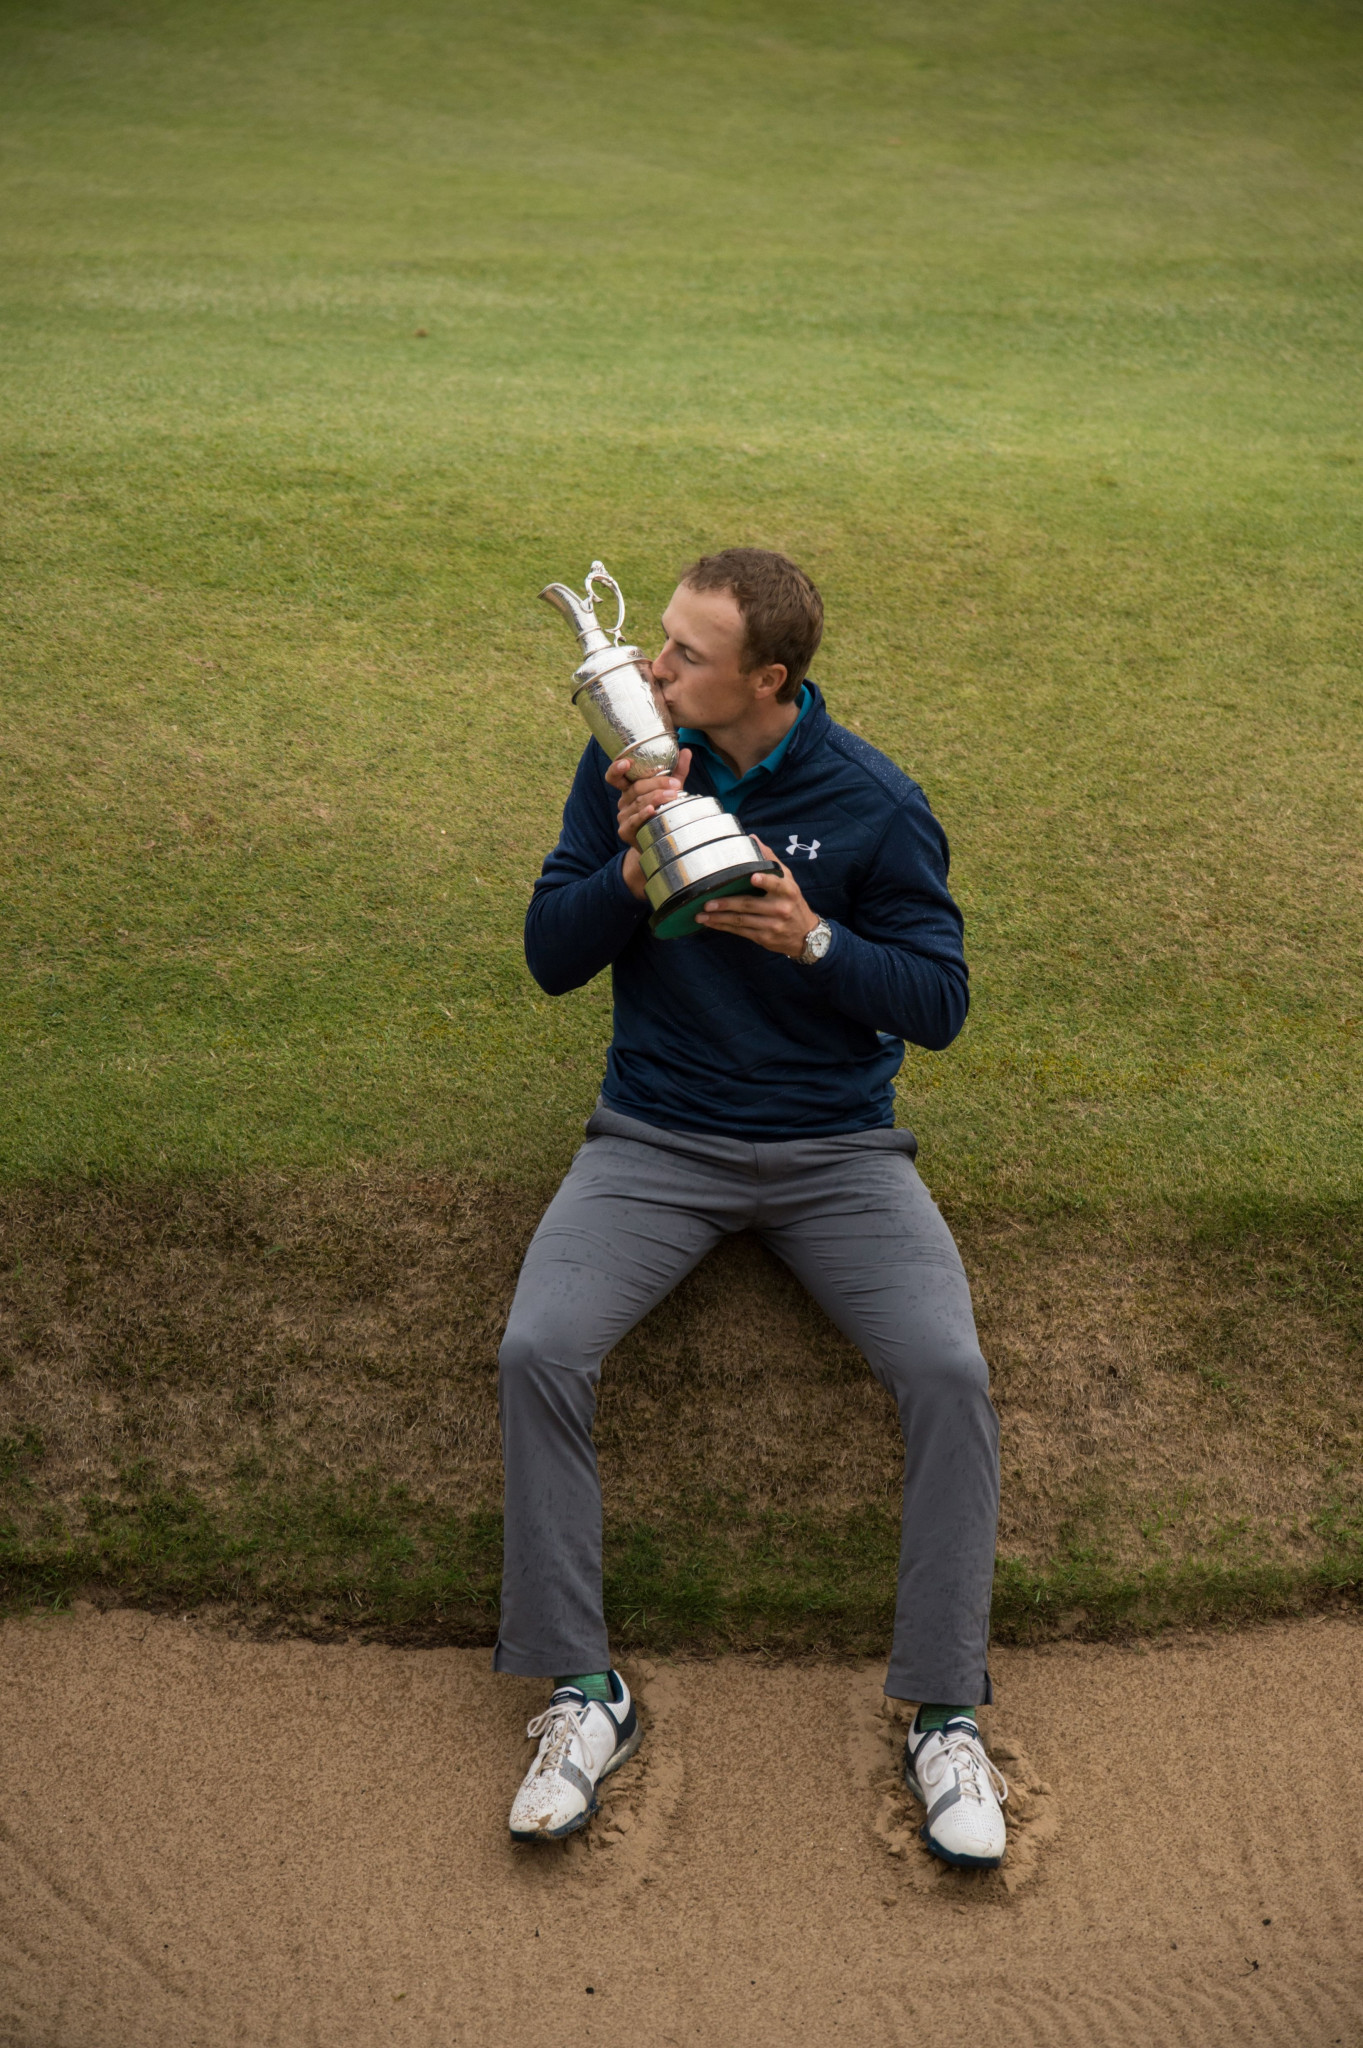 The United States' Jordan Spieth will hope to defend his title this weekend, after taking The Open last year with three birdies and an eagle in the last five holes ©Getty Images